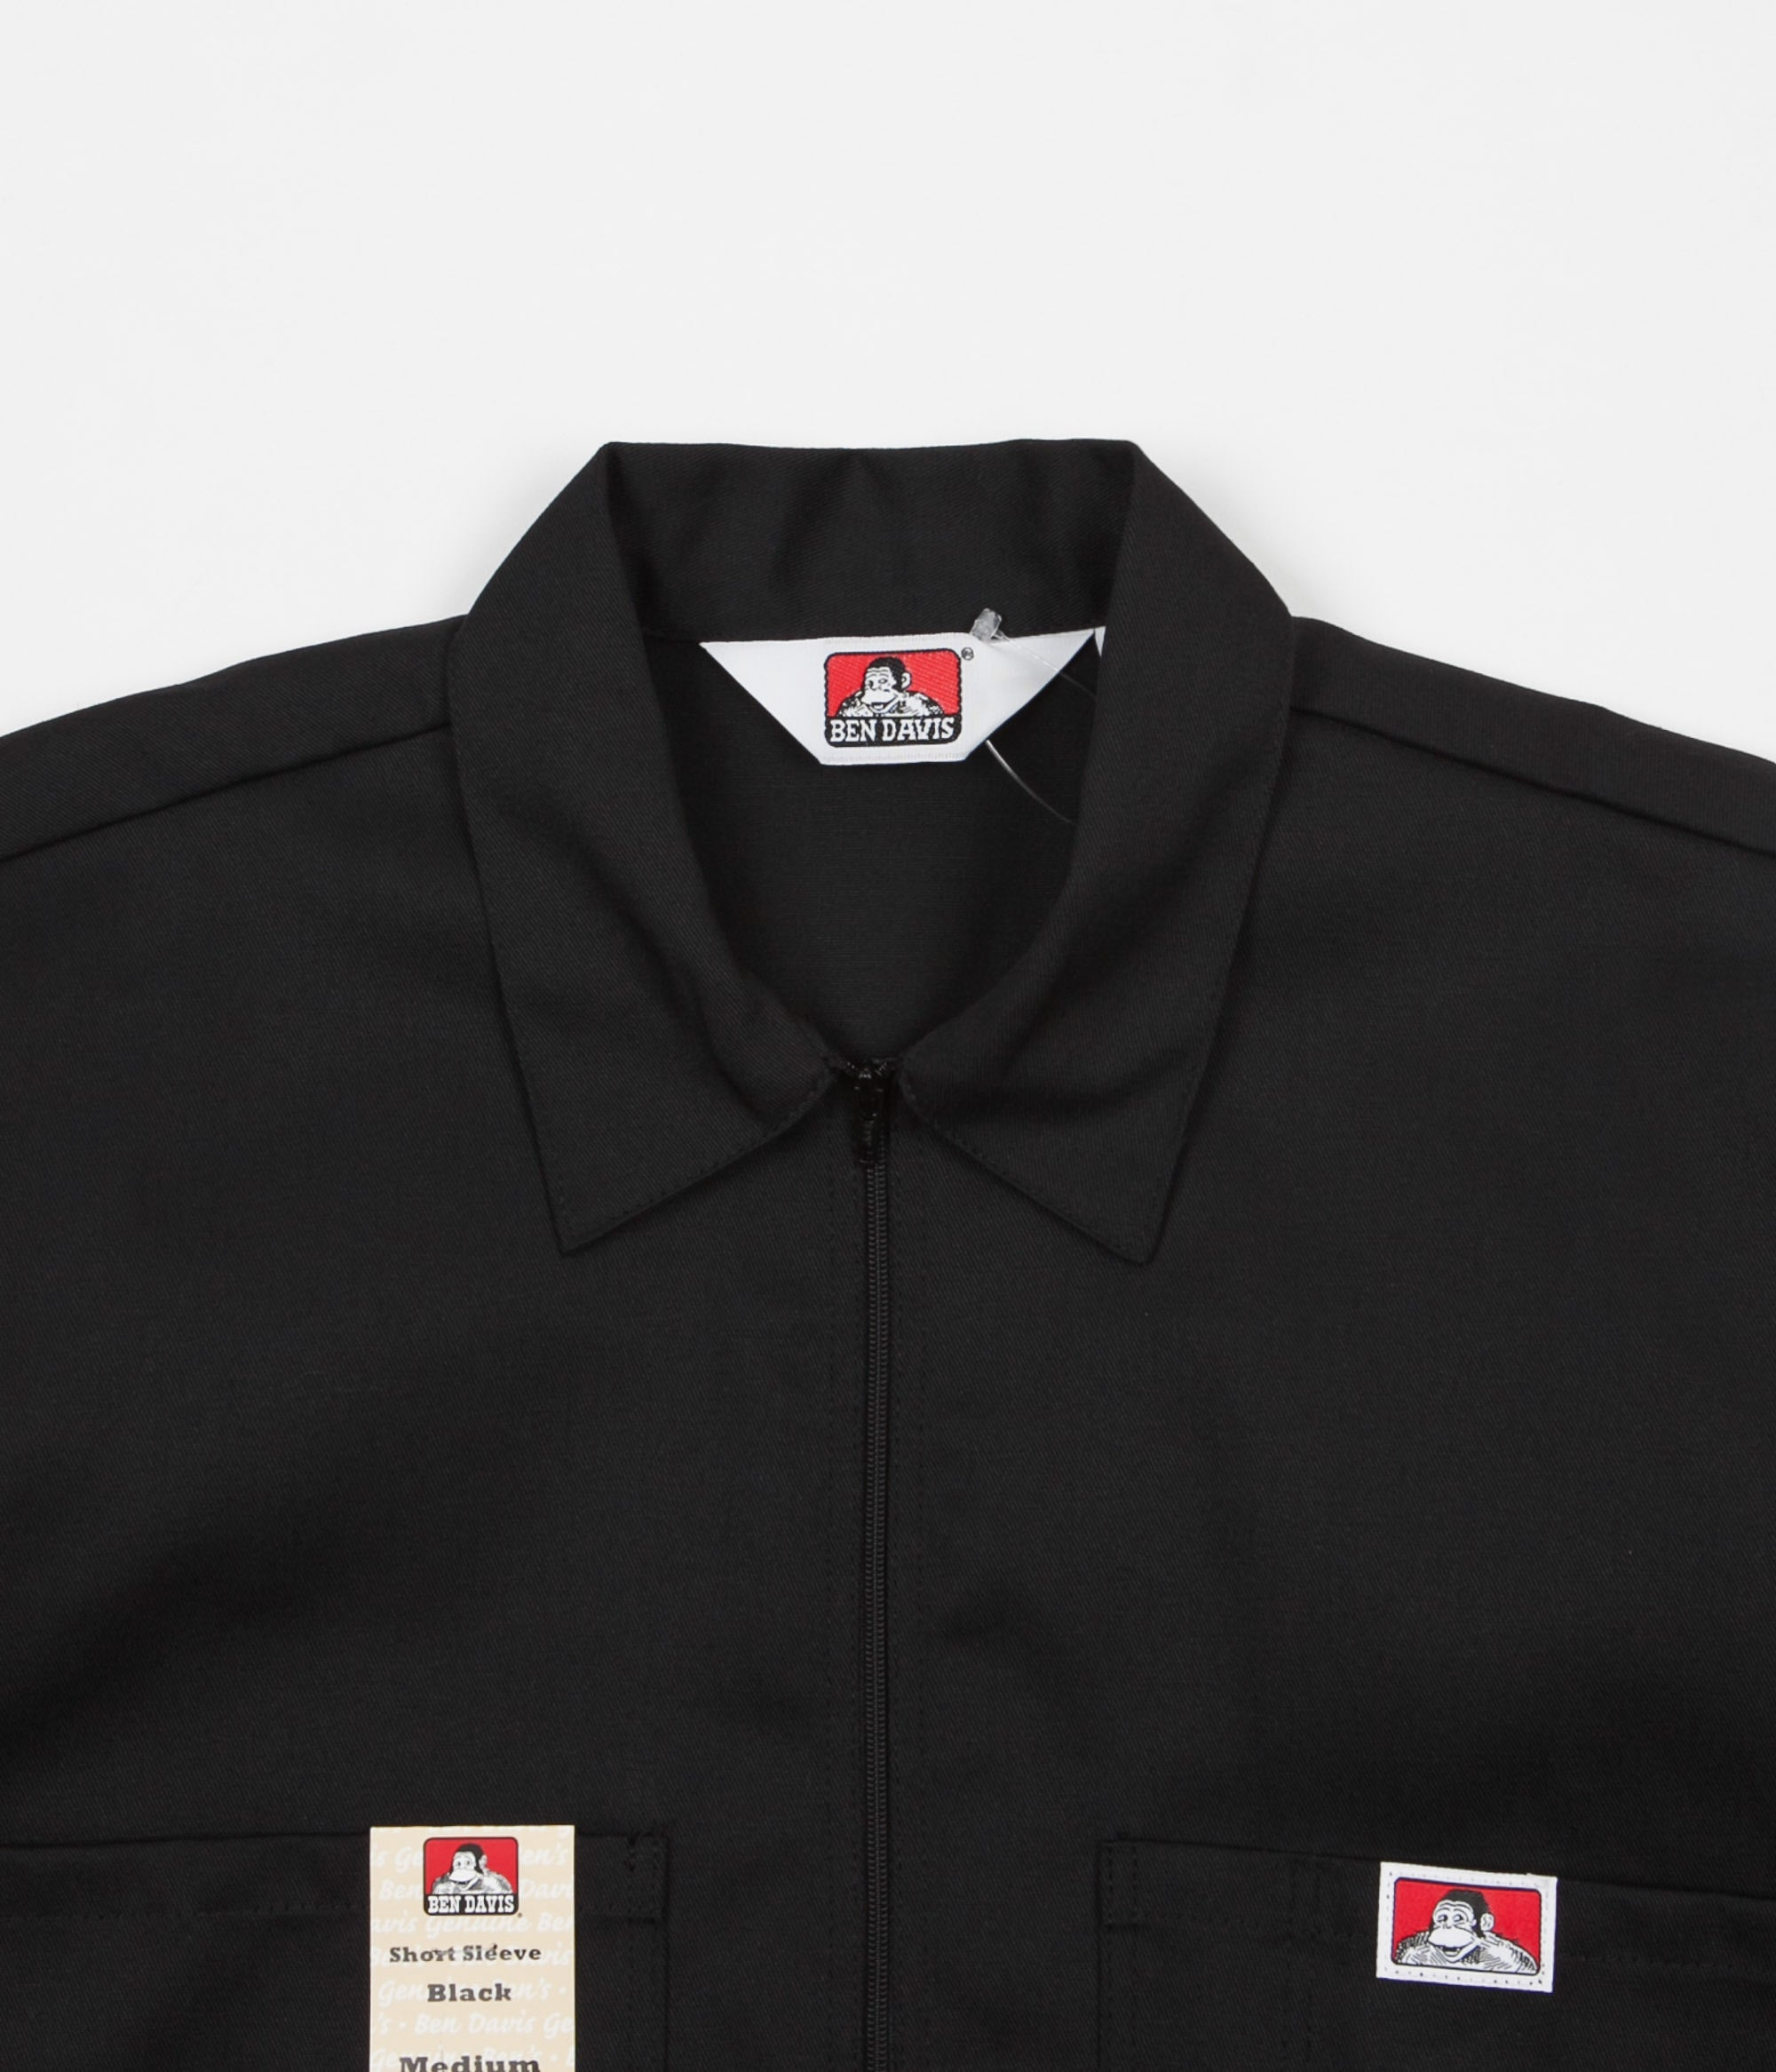 Ben Davis 1/2 Zip Shirt - Black